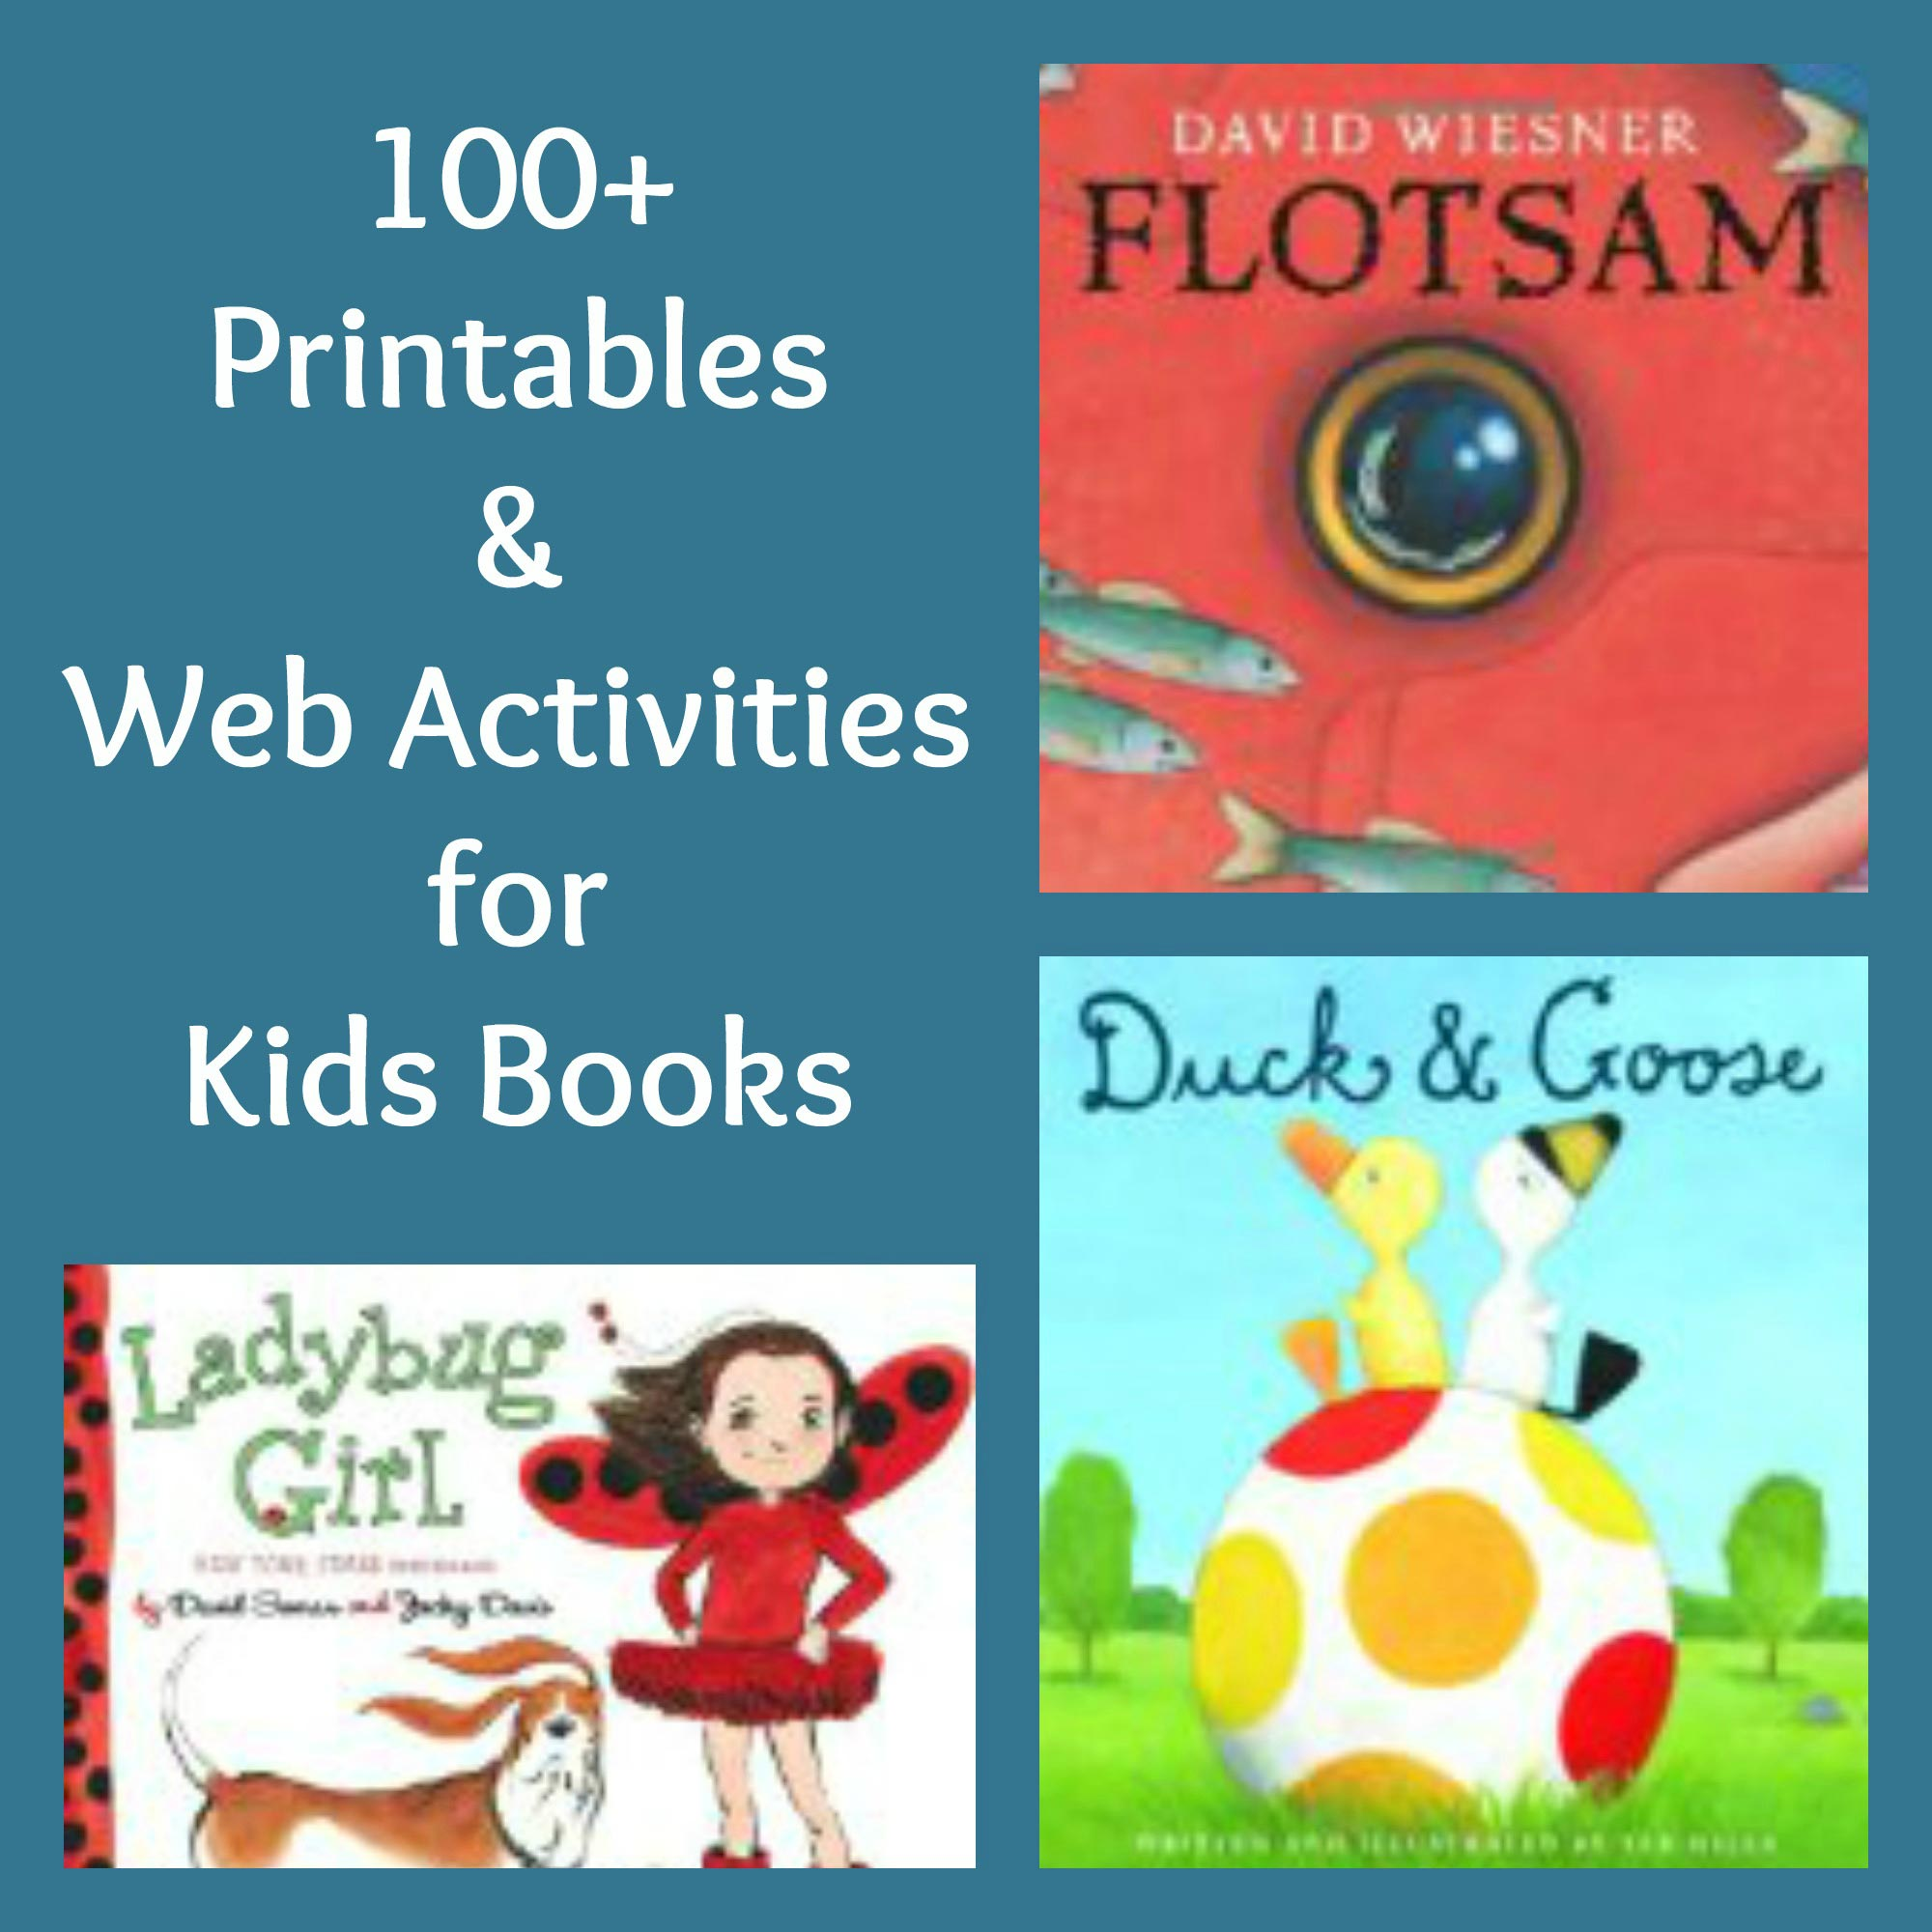 Read The Book Online 50 Free Read Aloud Books Online Edventures With Kids